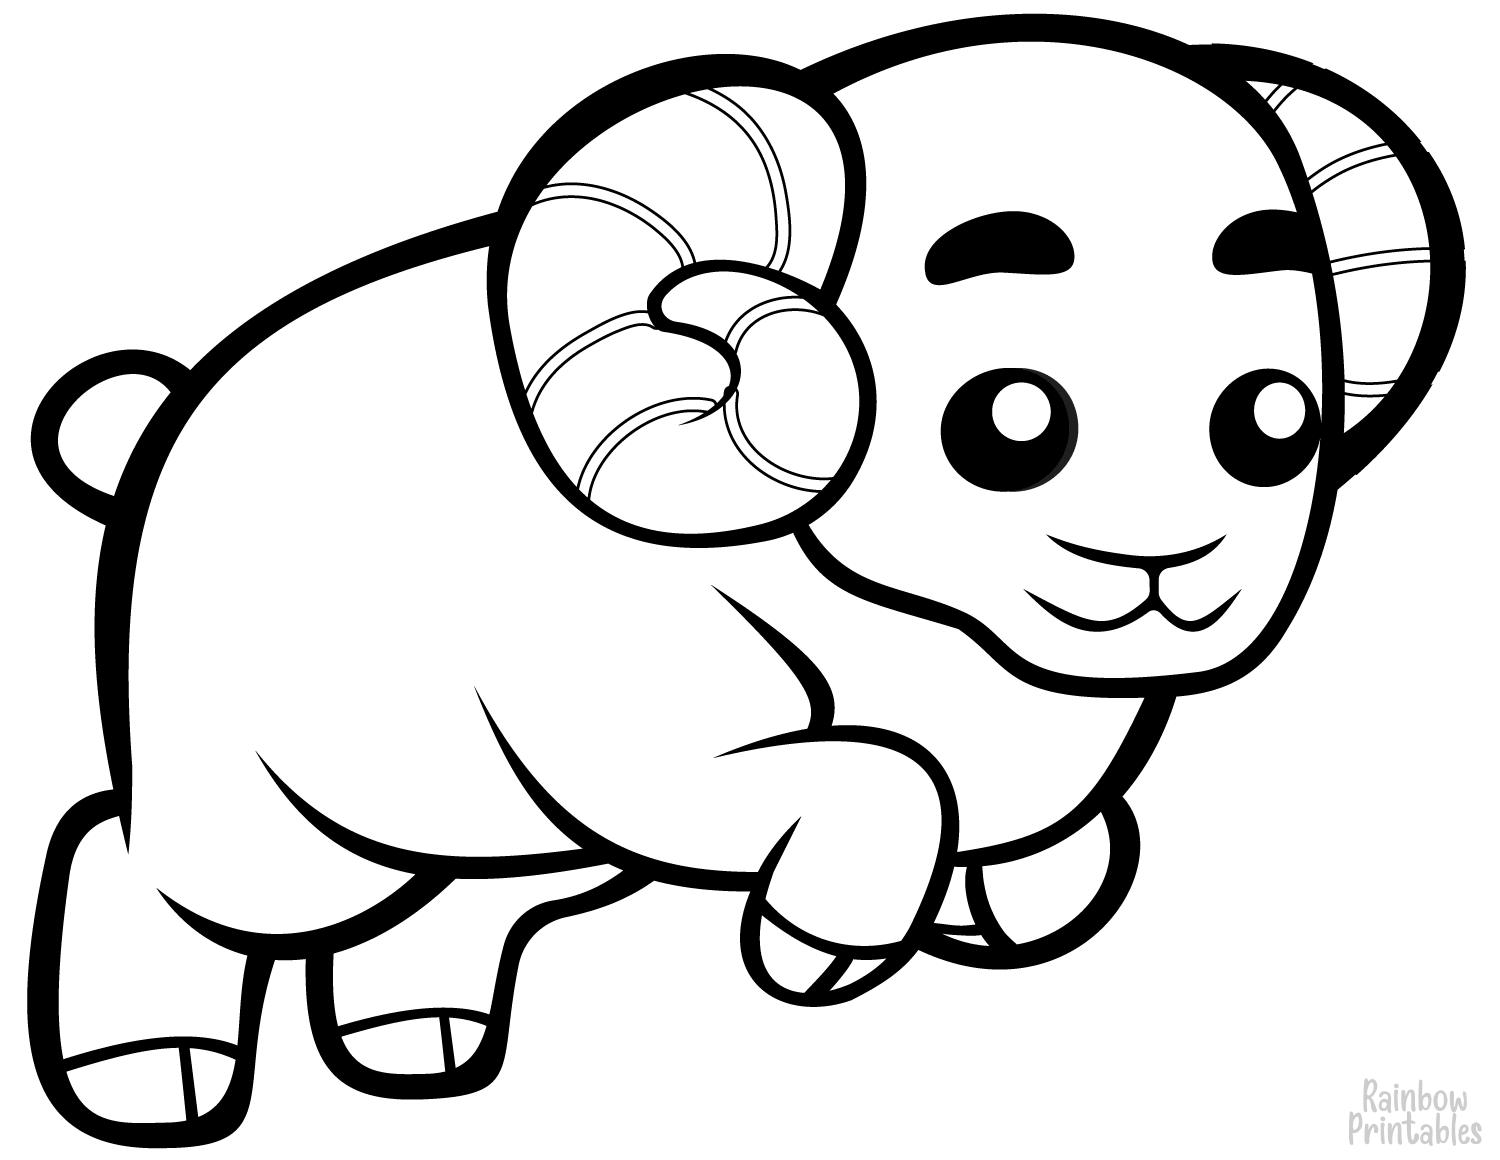 Sheeps, Rams, Lambs & Goats Coloring Pages for Kids